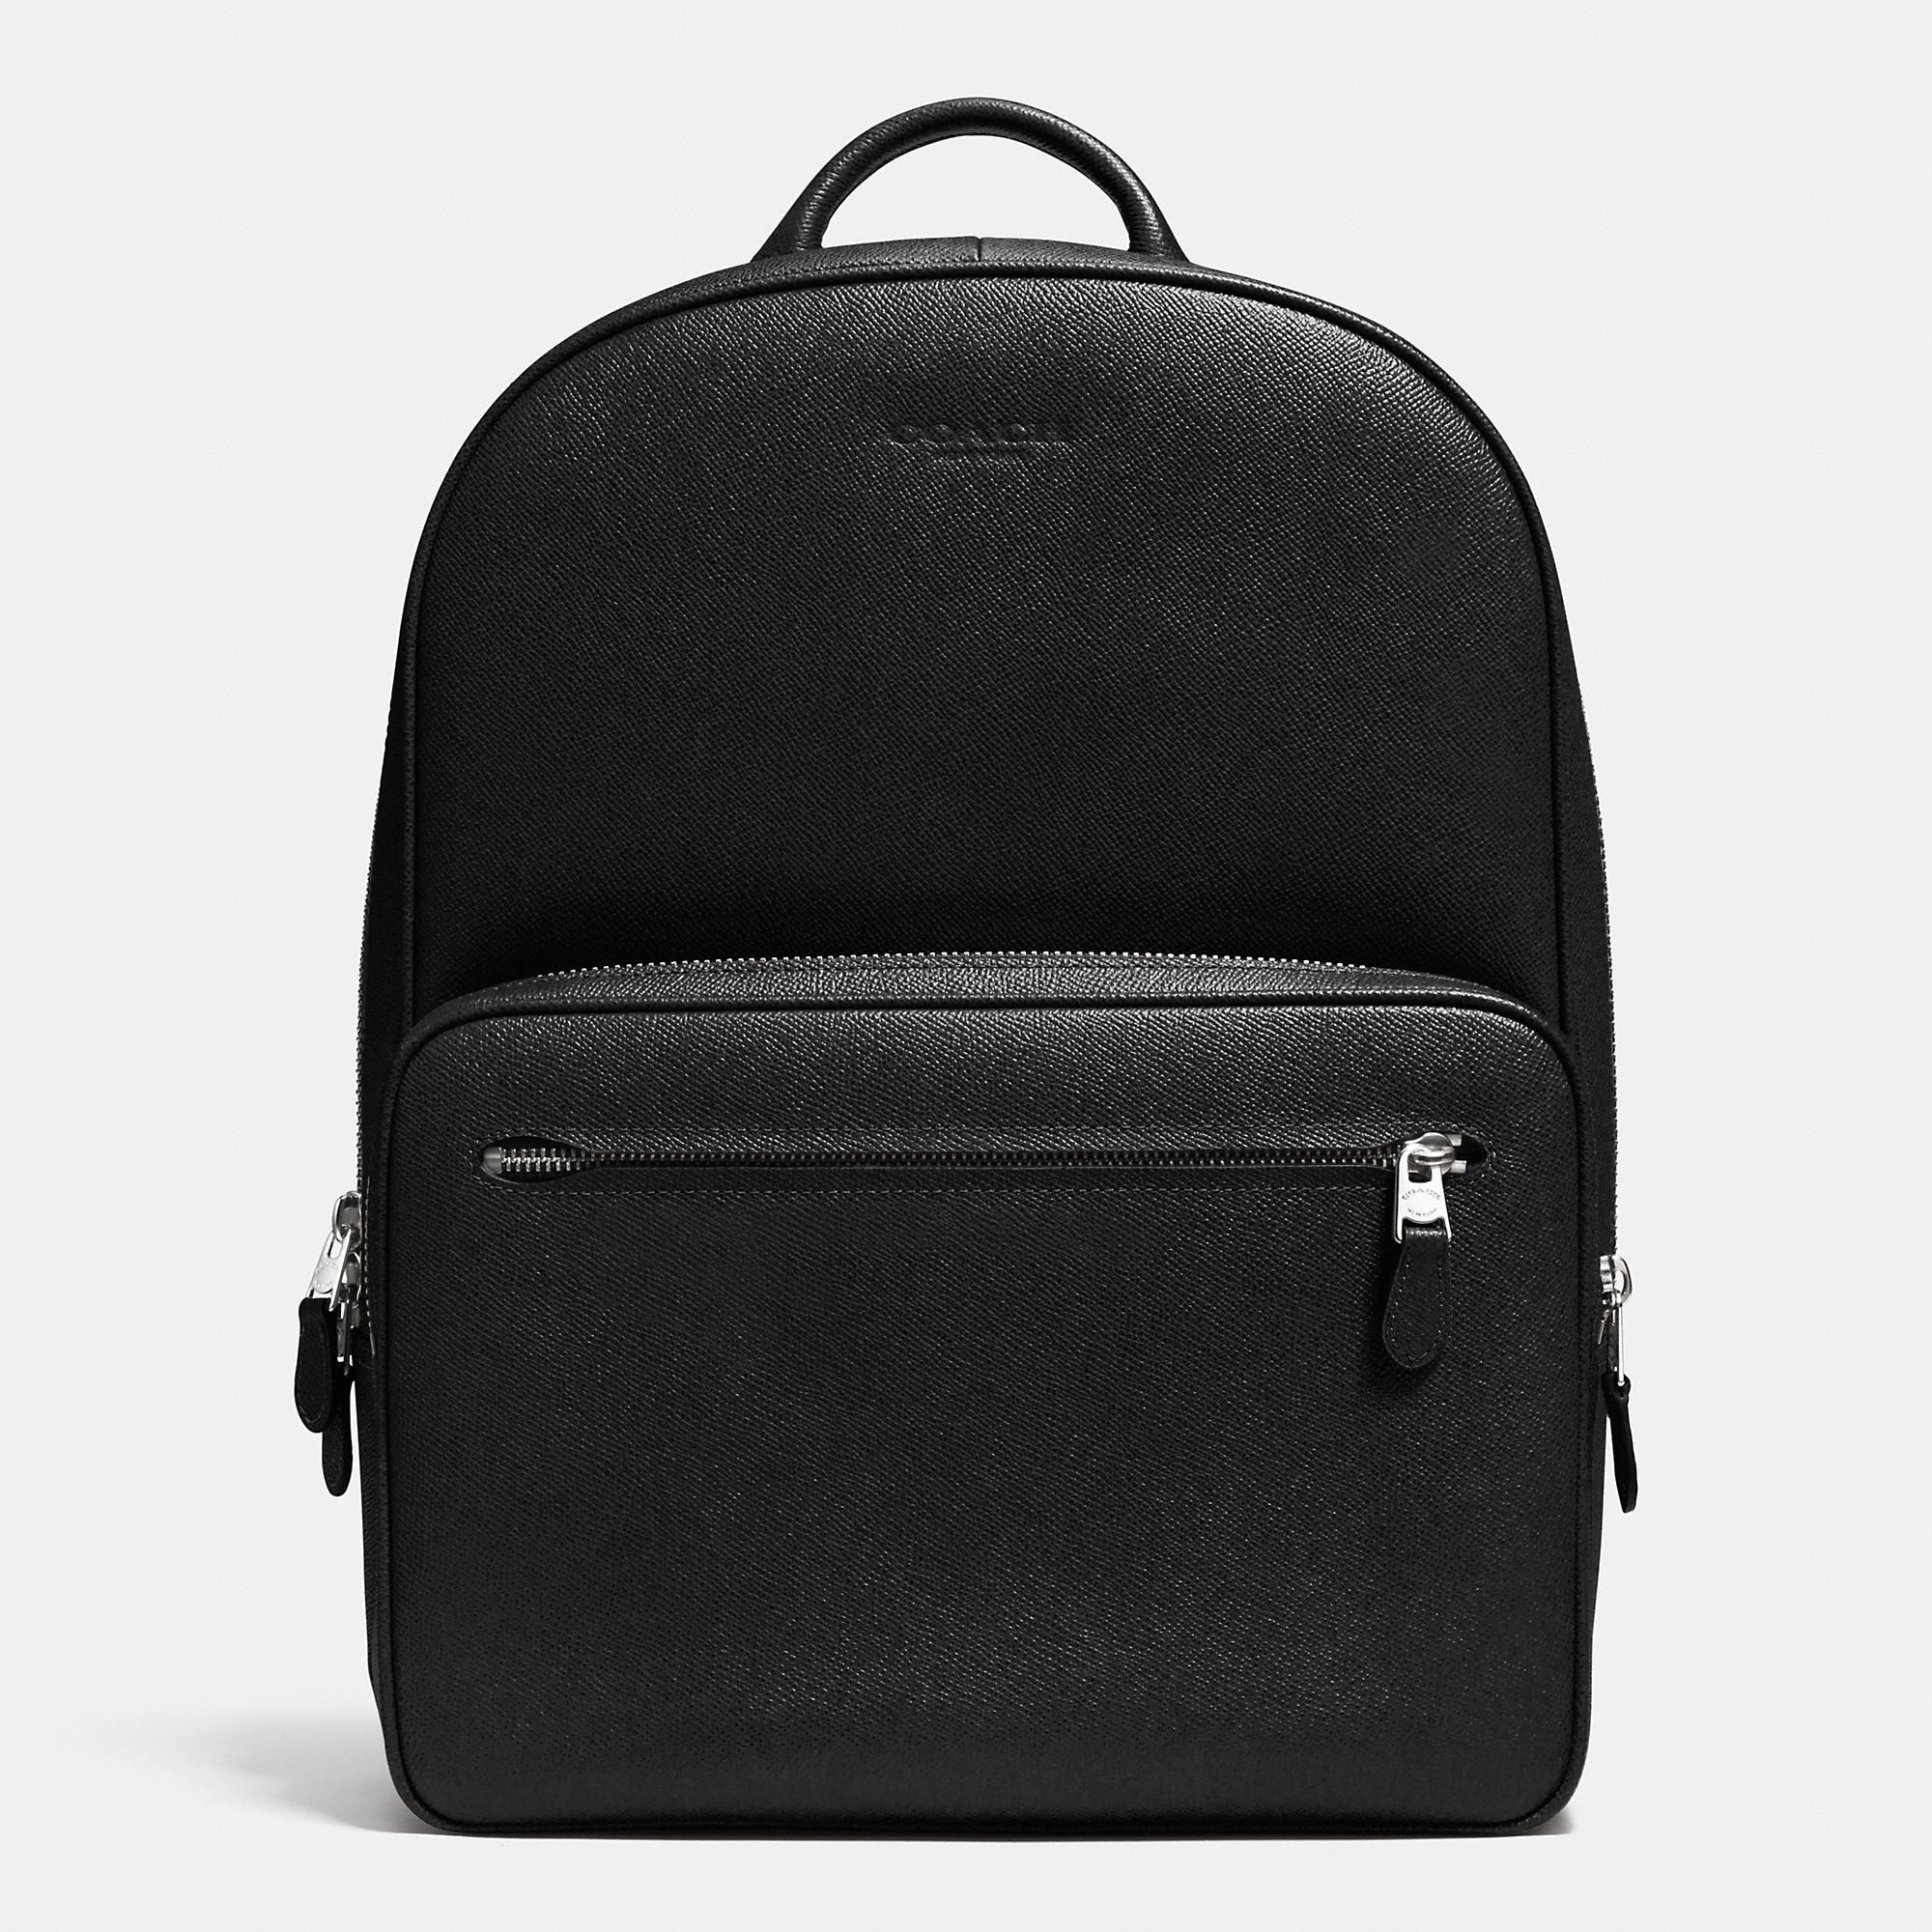 Lyst - Coach Hudson Backpack In Crossgrain Leather in ...